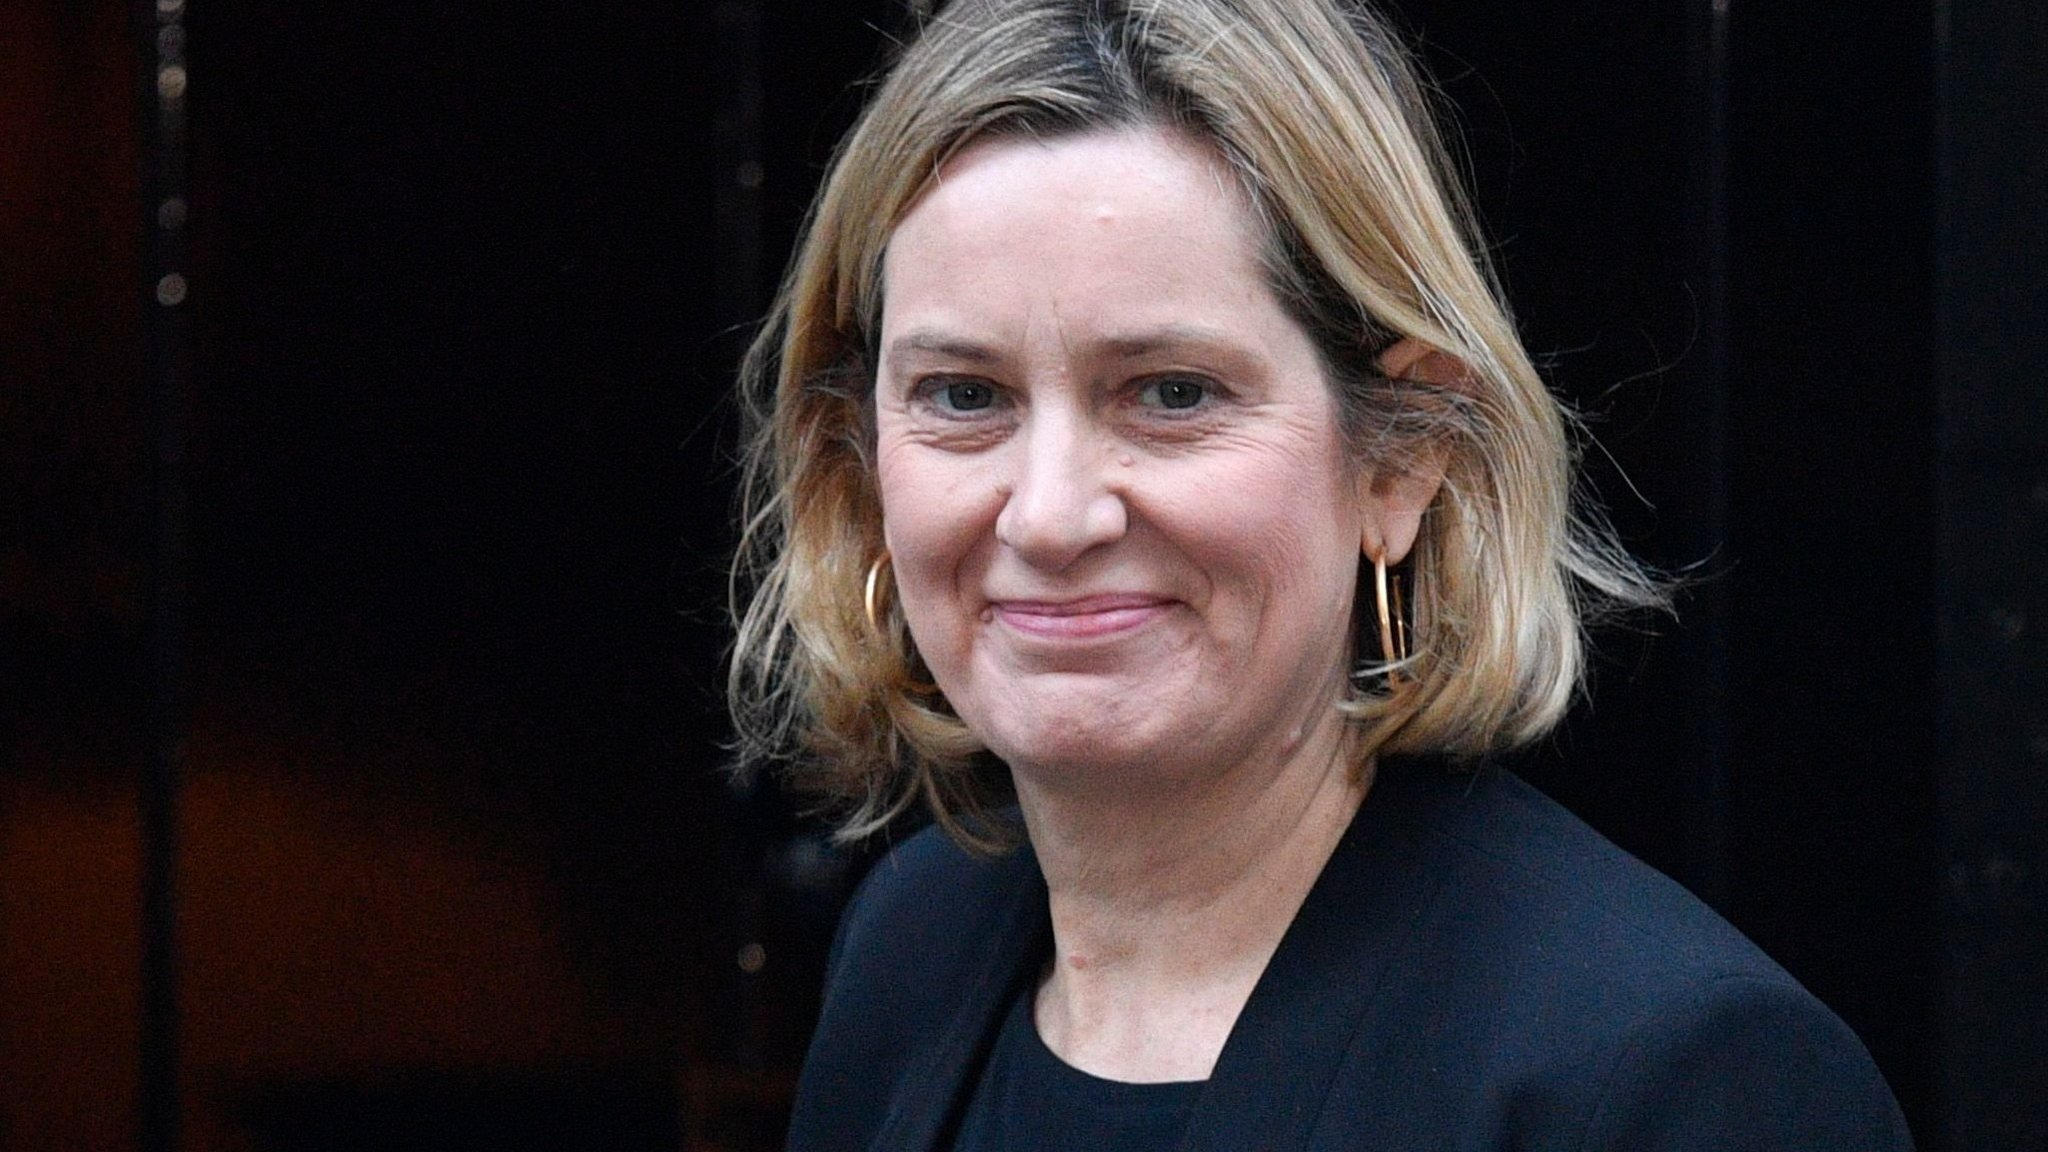 Amber Rudd at Downing Street, London, United Kingdom - 13 Nov 2018